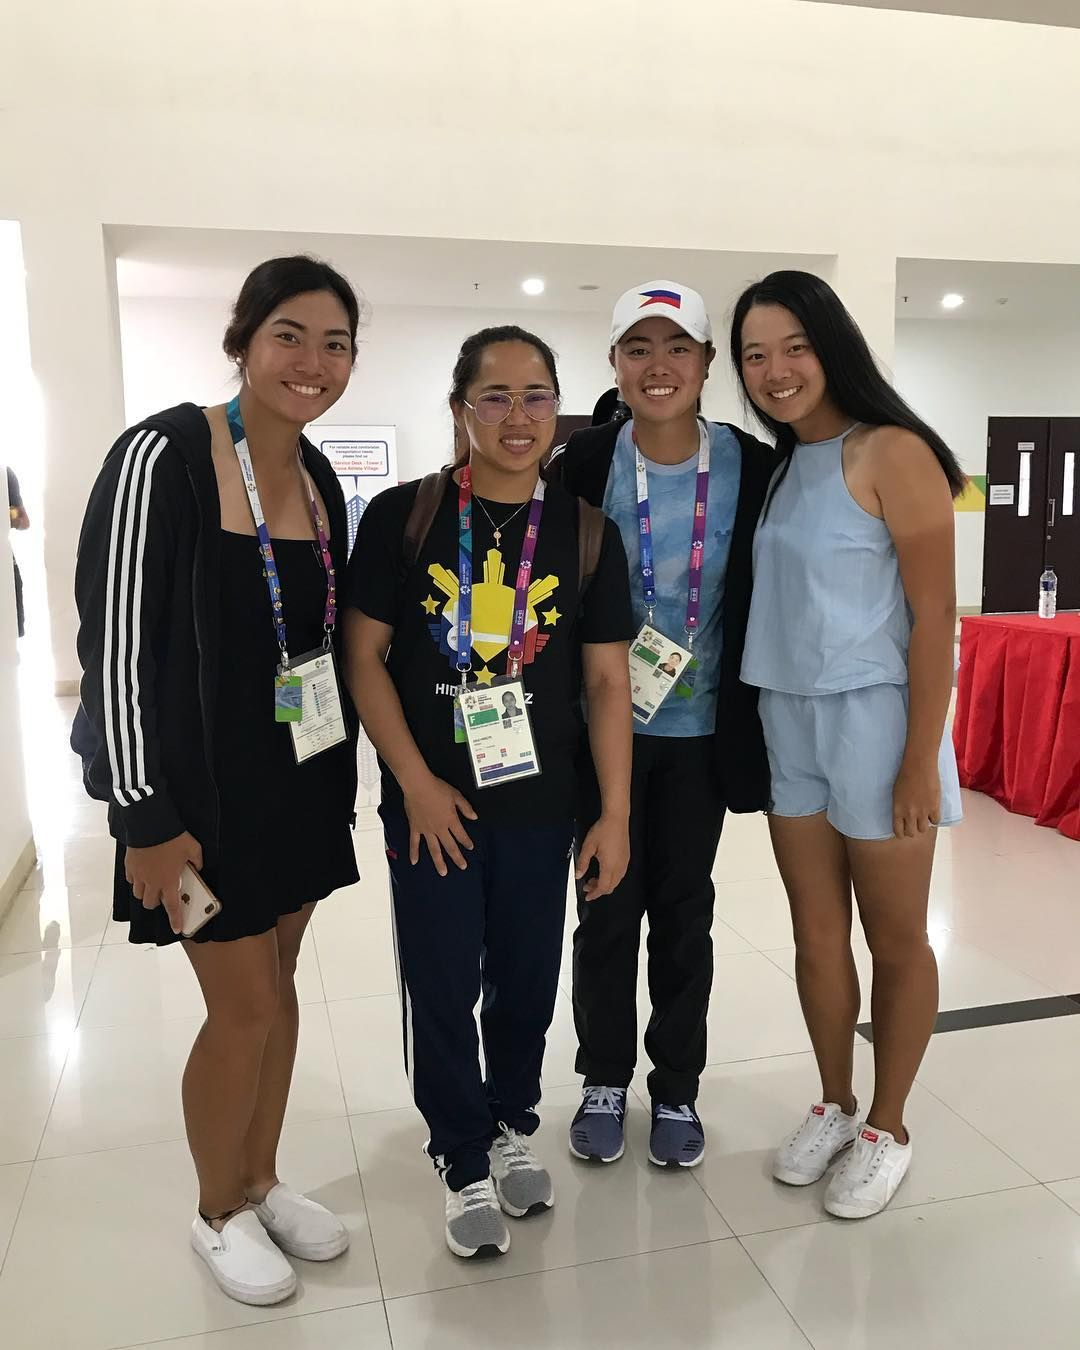 Four Women, Including Generation T Honouree Hidilyn Diaz, Earn Gold For The Philippines At The 2018 Asian Games